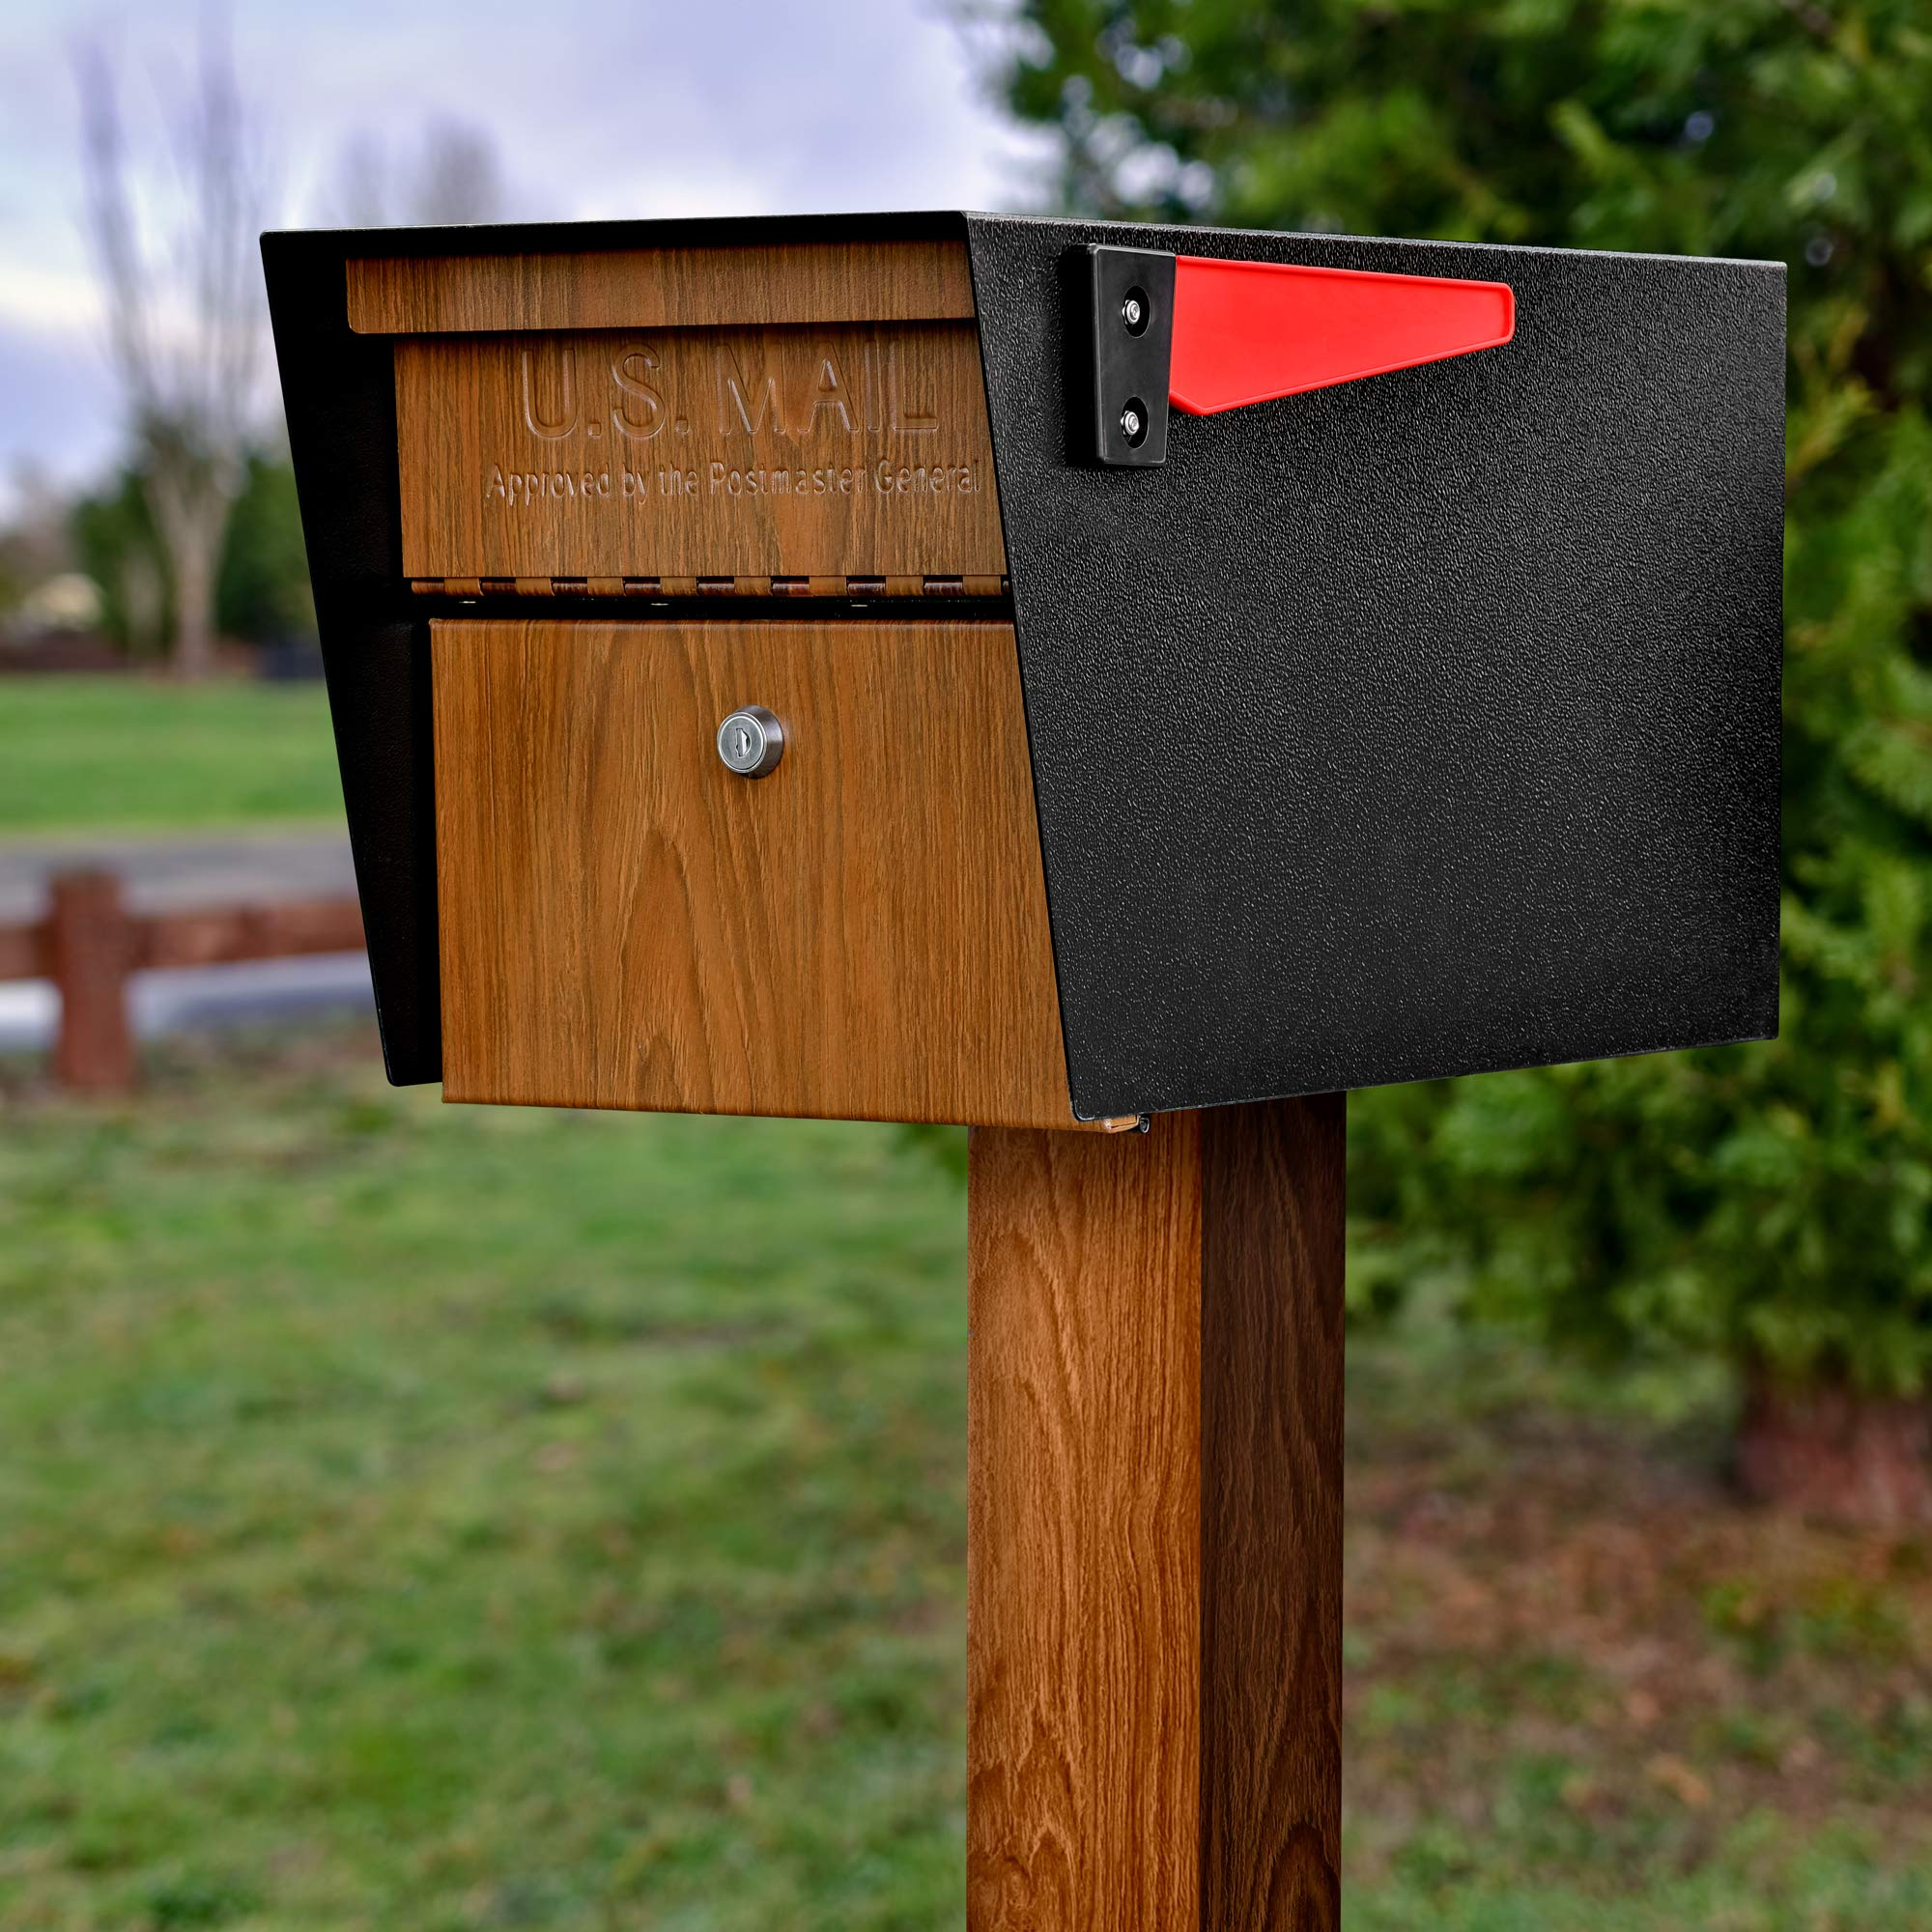 Mail Boss Curbside 7510 Mail Manager Locking Security Mailbox, Wood Grain, Black Powder Coat by Mail Boss (Image #1)